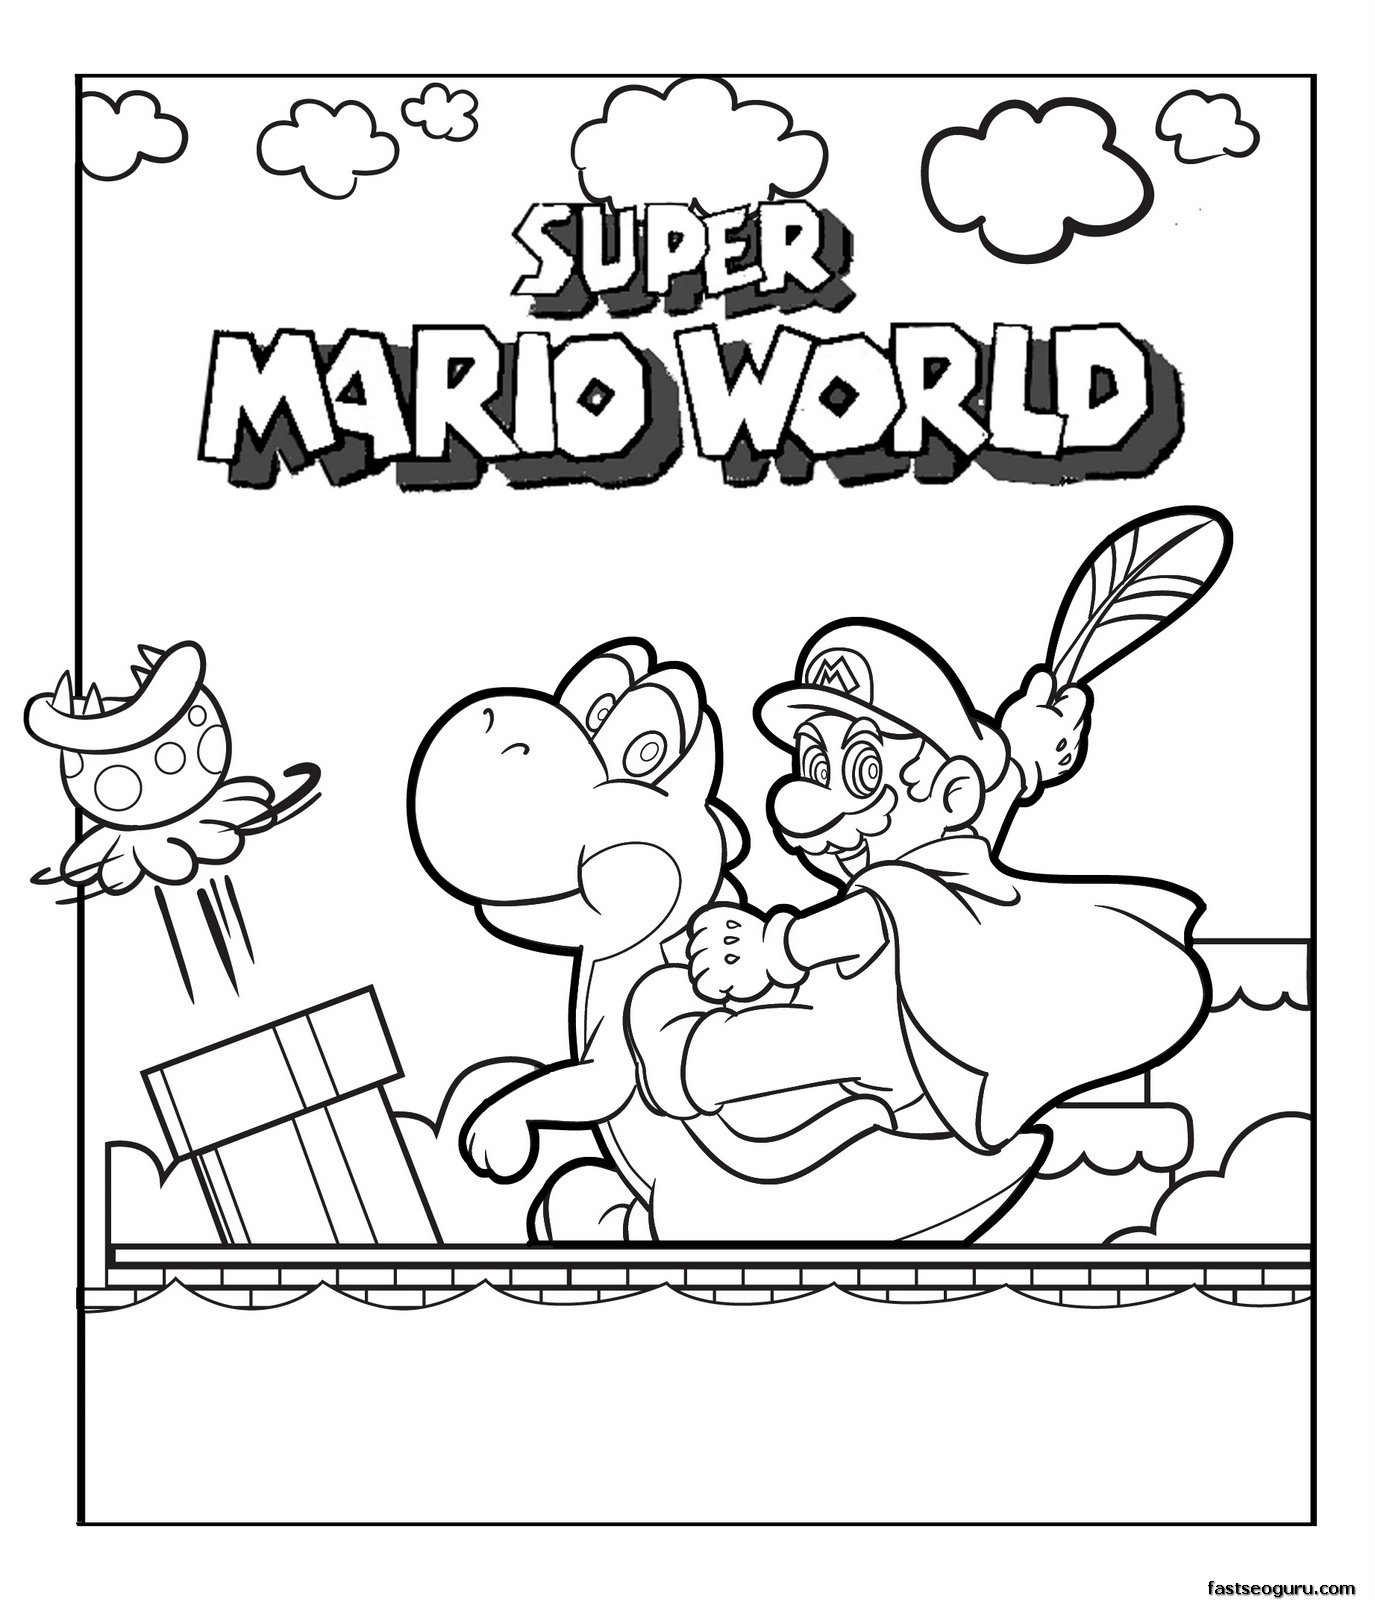 Print out Super Mario world coloring